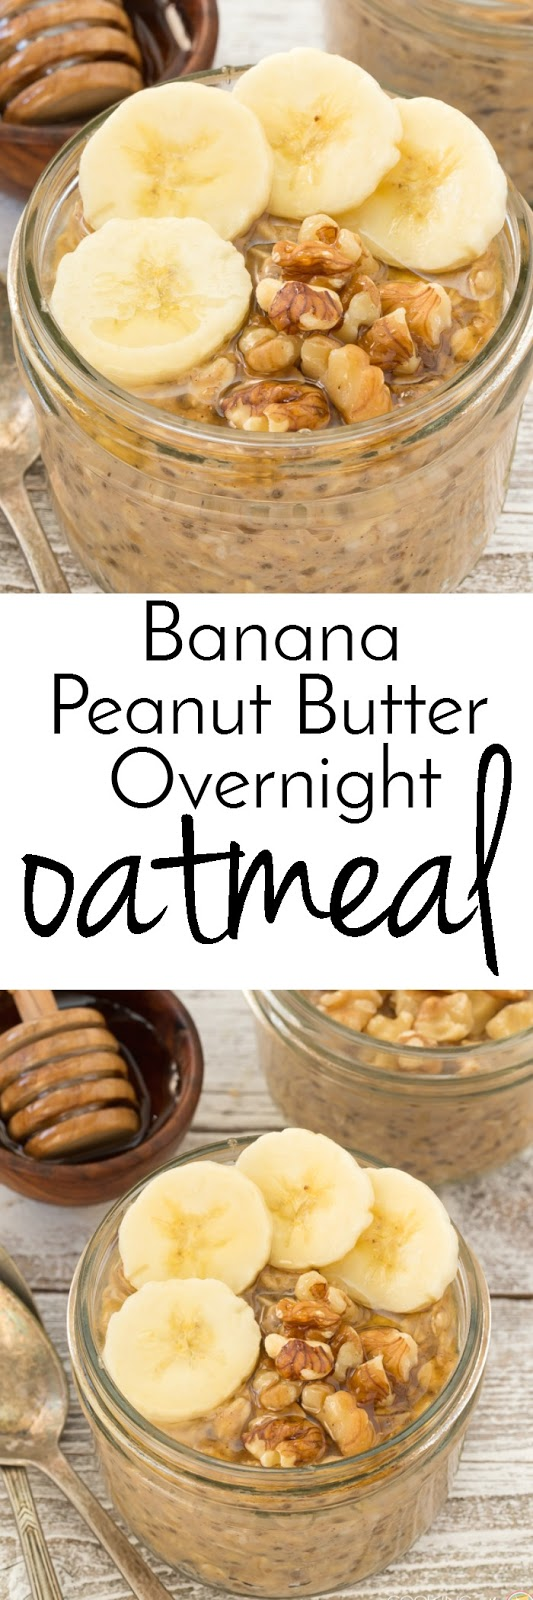 Banana peanut butter oatmeal, made overnight! This easy overnight oatmeal recipe is one you'll want to get out of bed for! Also made with chia seeds, honey and walnuts so it's a healthy breakfast.